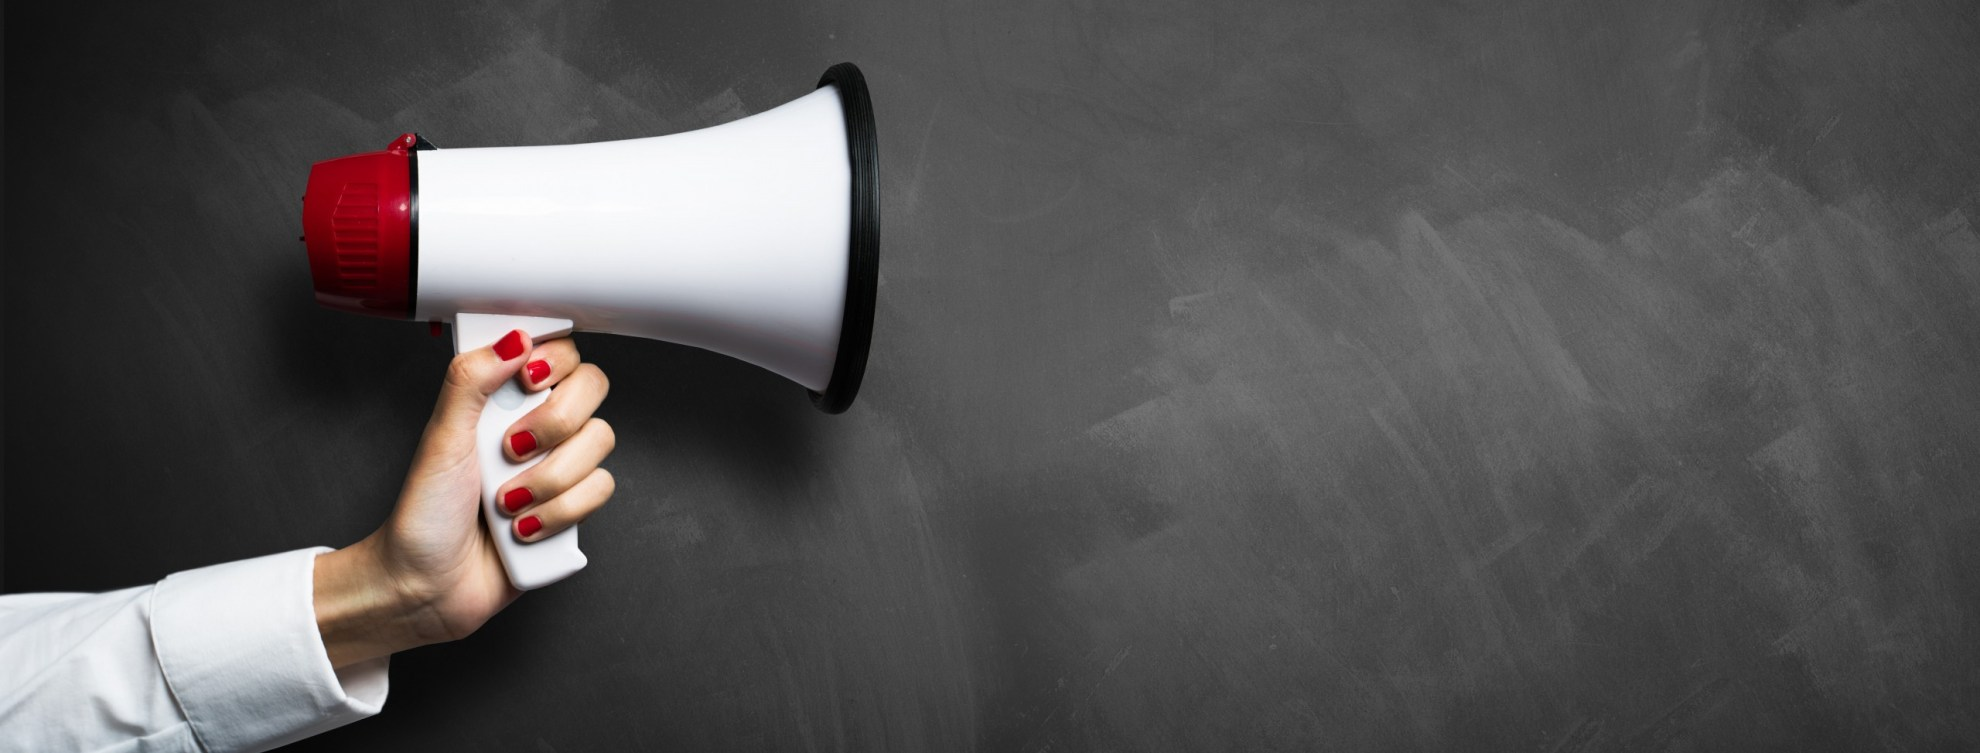 Woman's hand holding a red & white megaphone against a chalkboard backdrop.